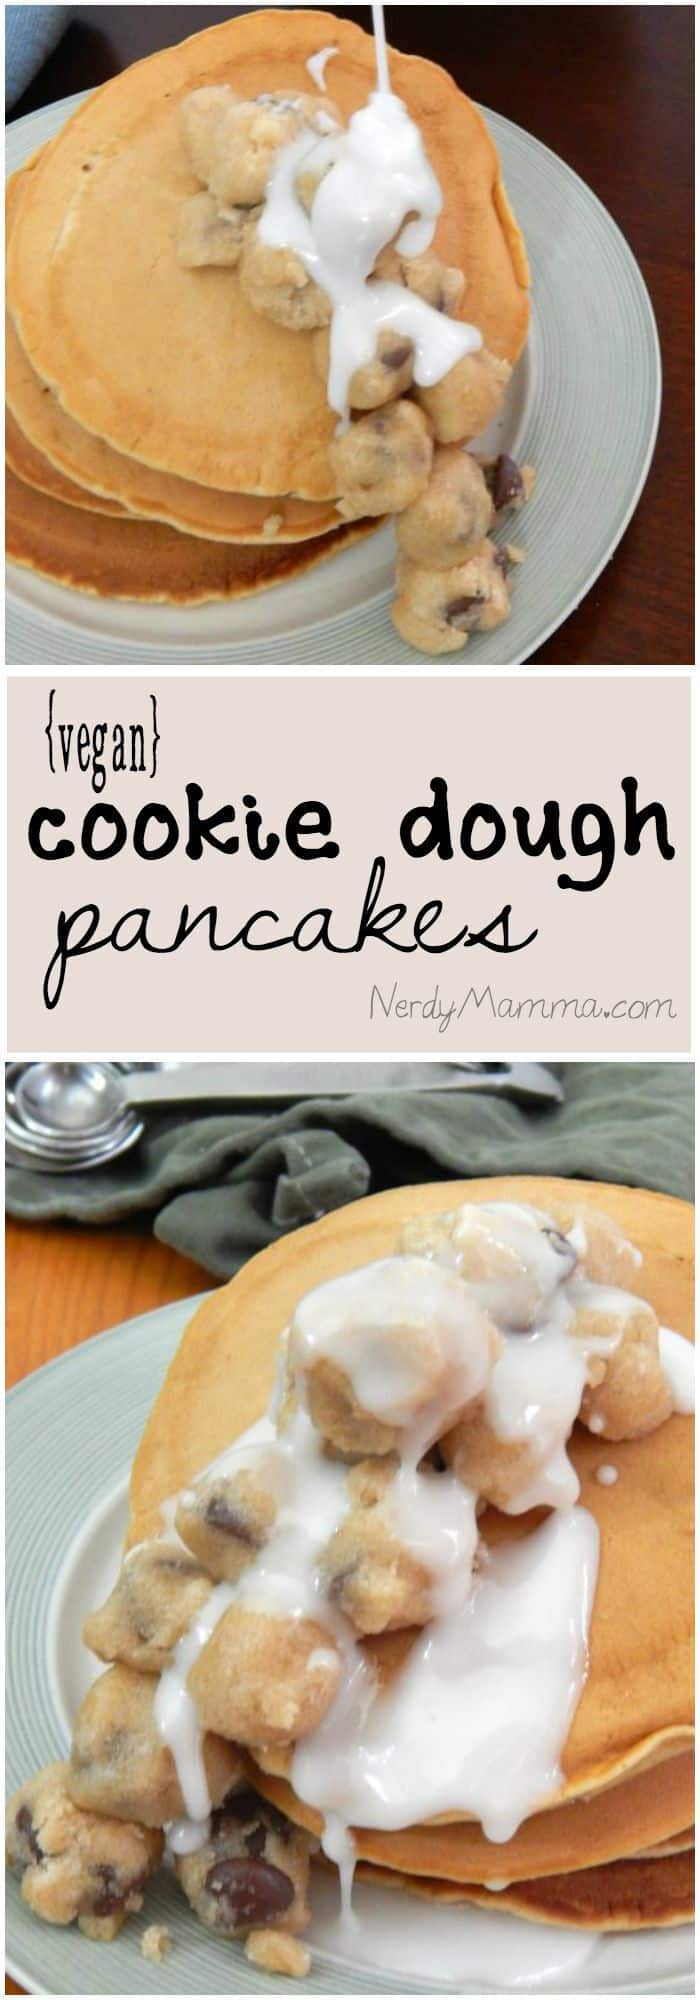 These easy vegan pancakes are totally fun and topped with cookie dough...so delicious.